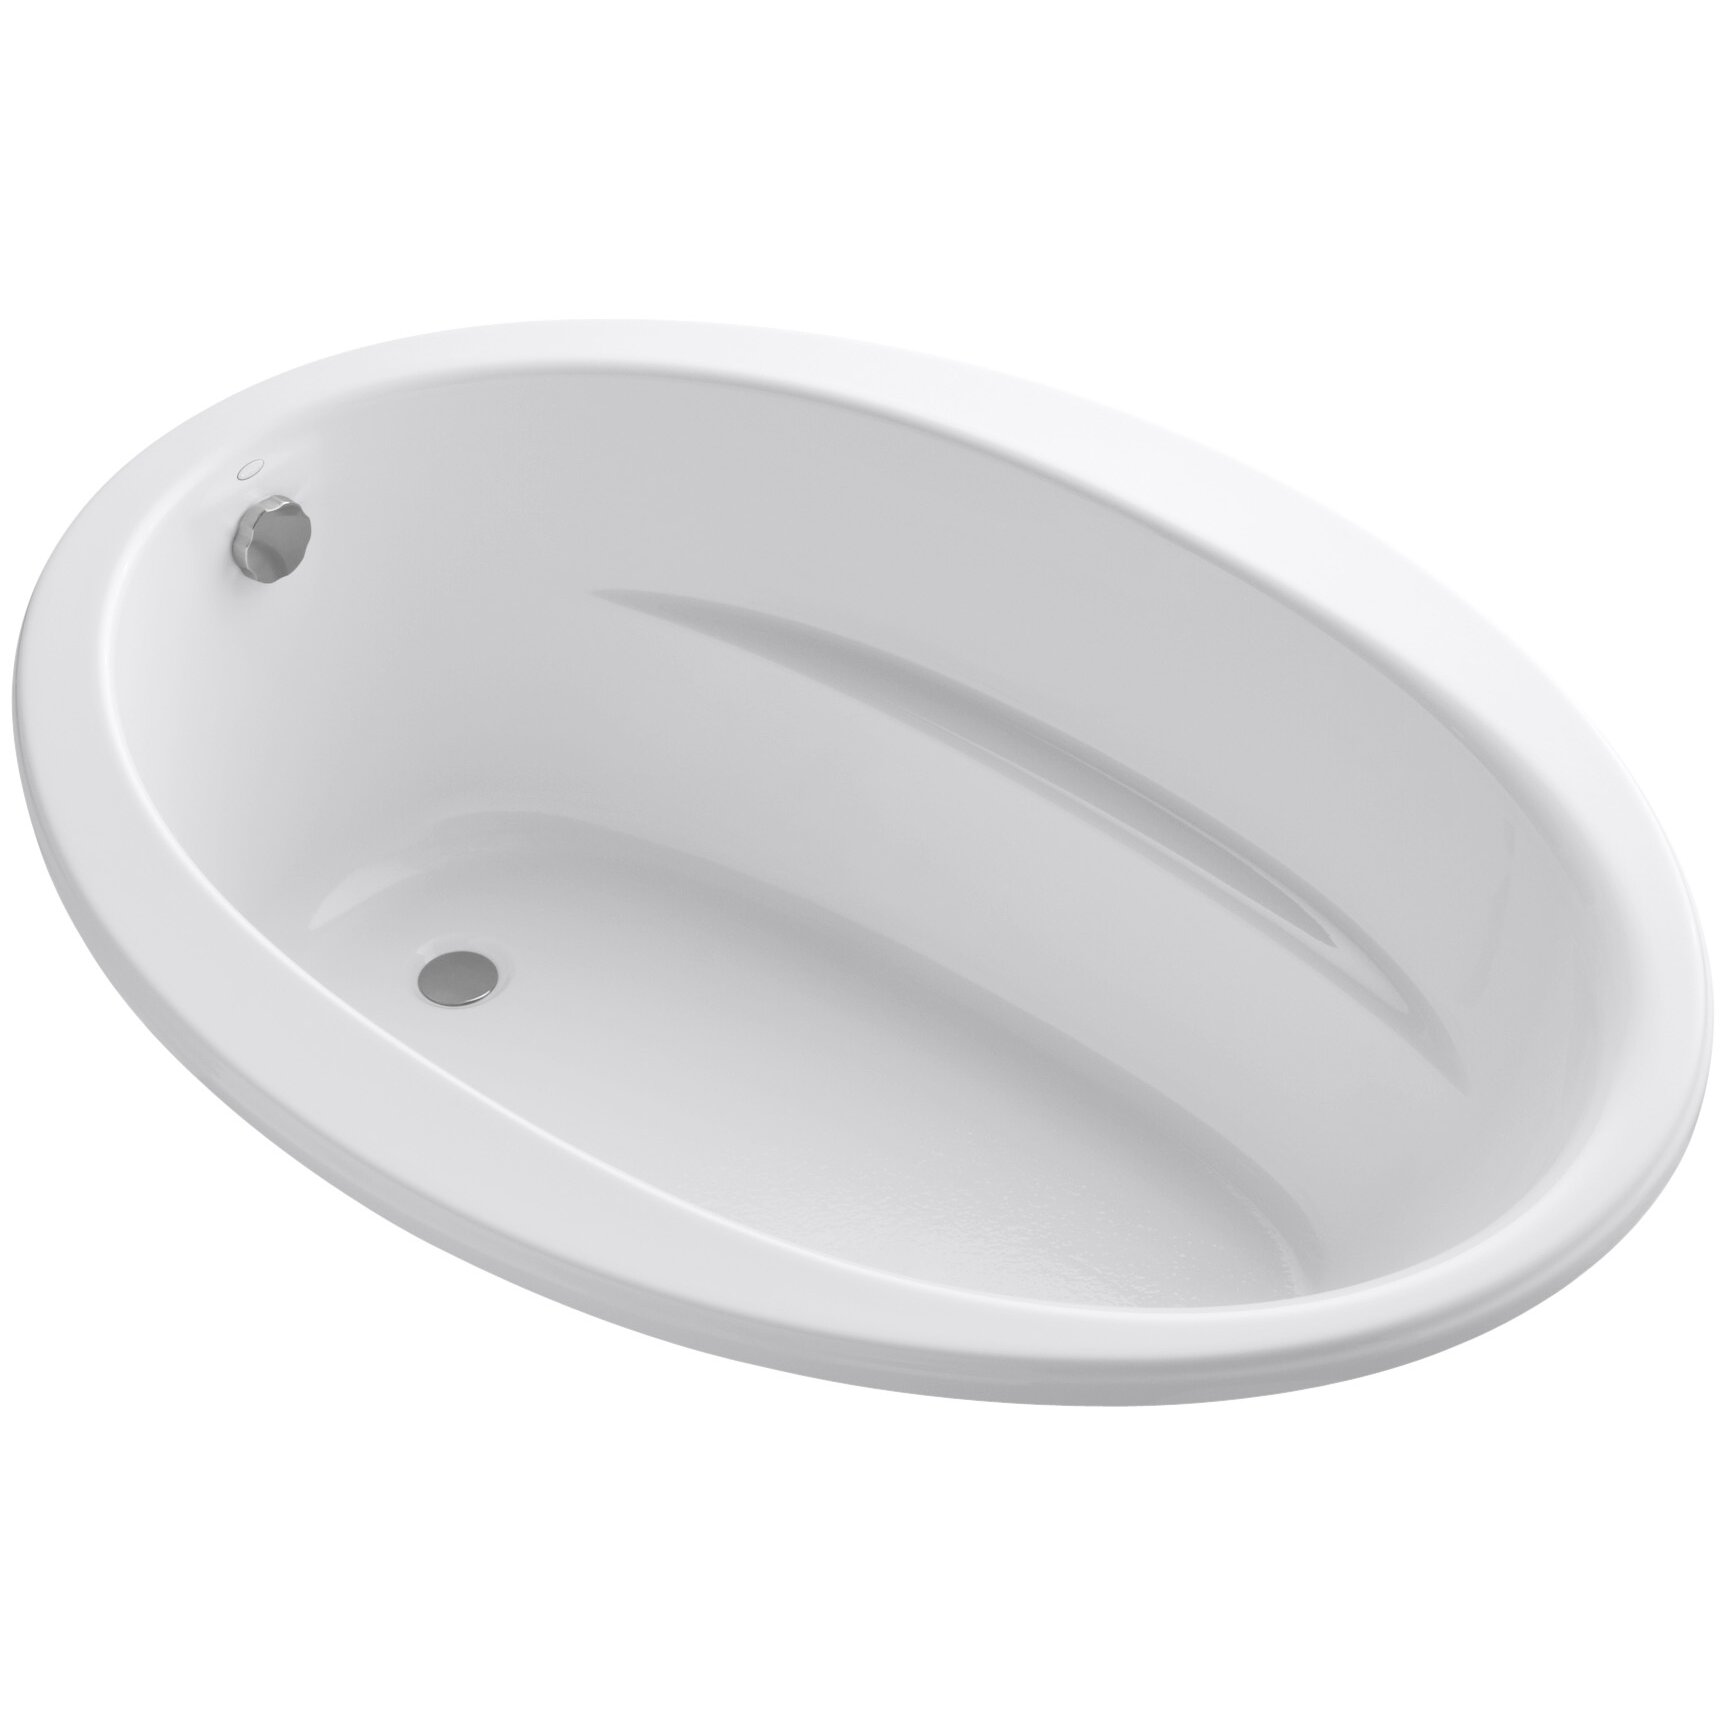 Bathtub backrest headrest - Sunward 60 X 42 Soaking Bathtub